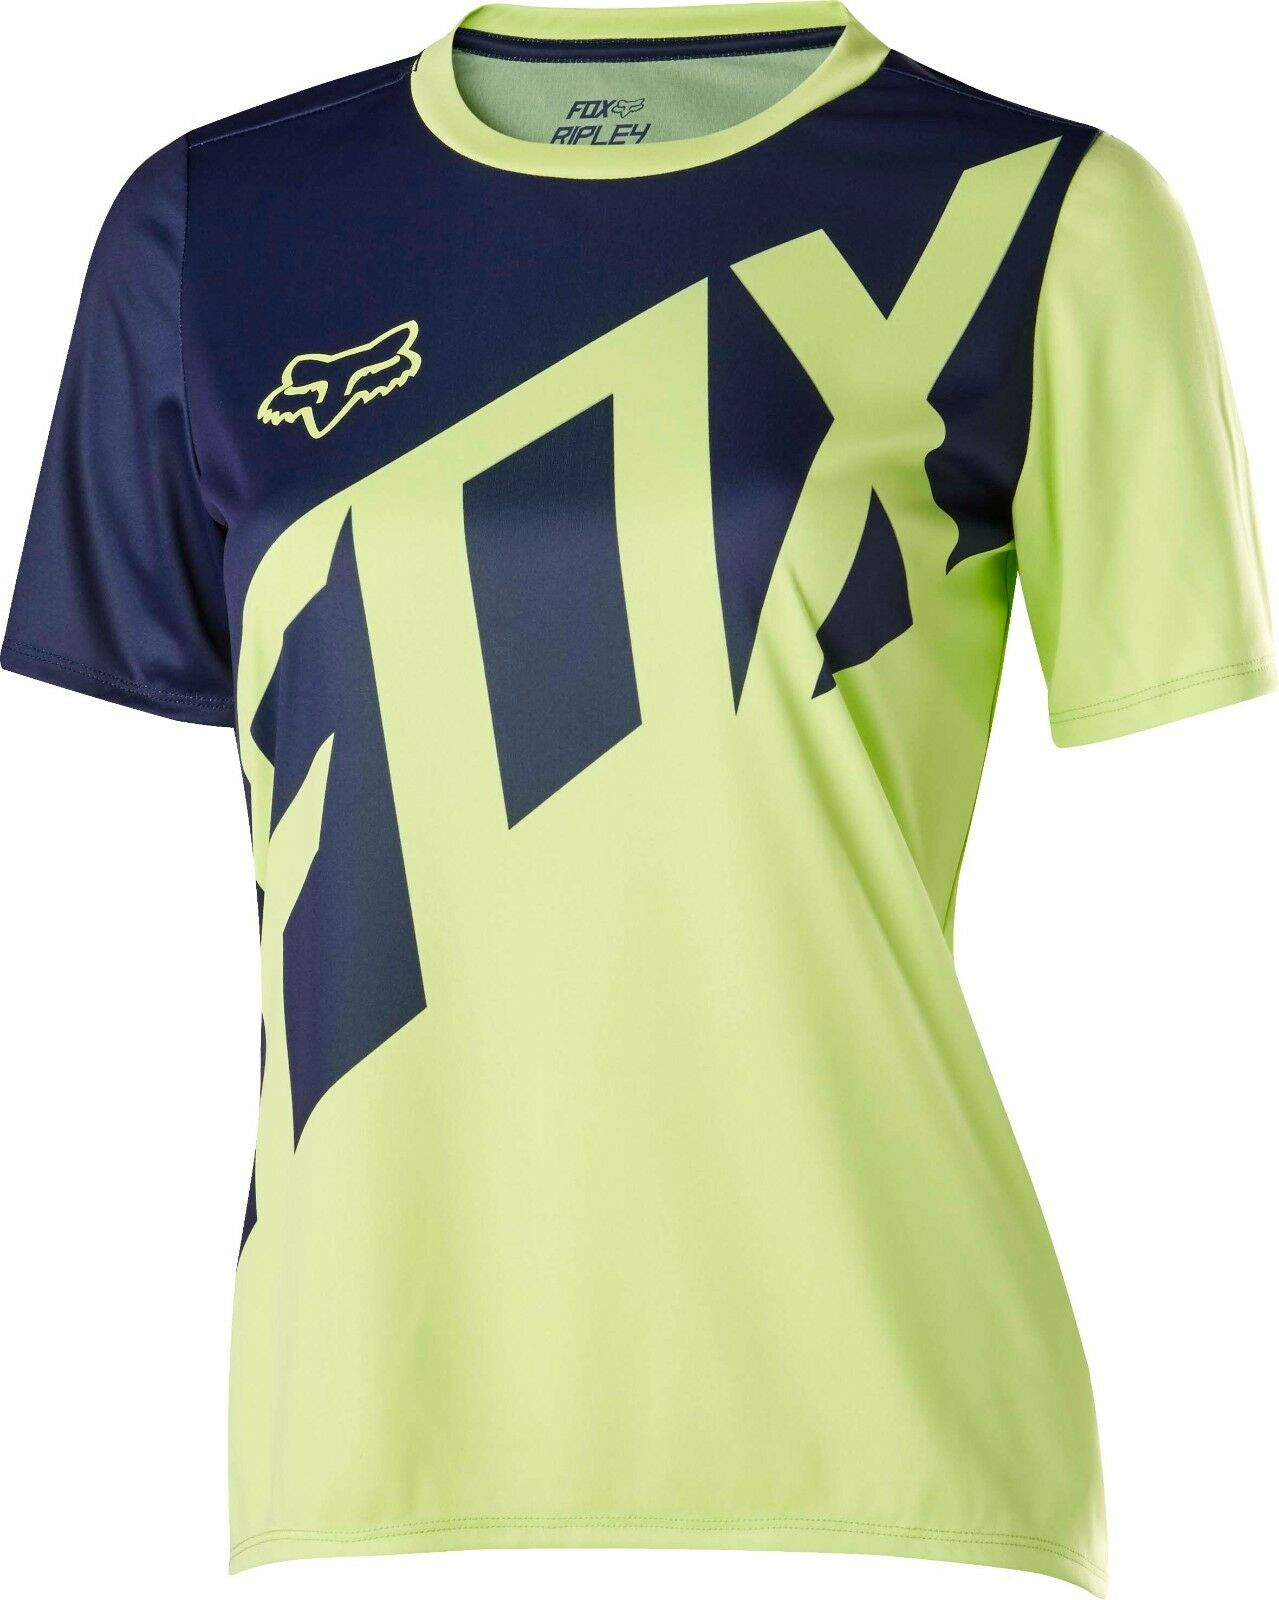 Fox Racing Womens Ripley s s Jersey Light Yellow